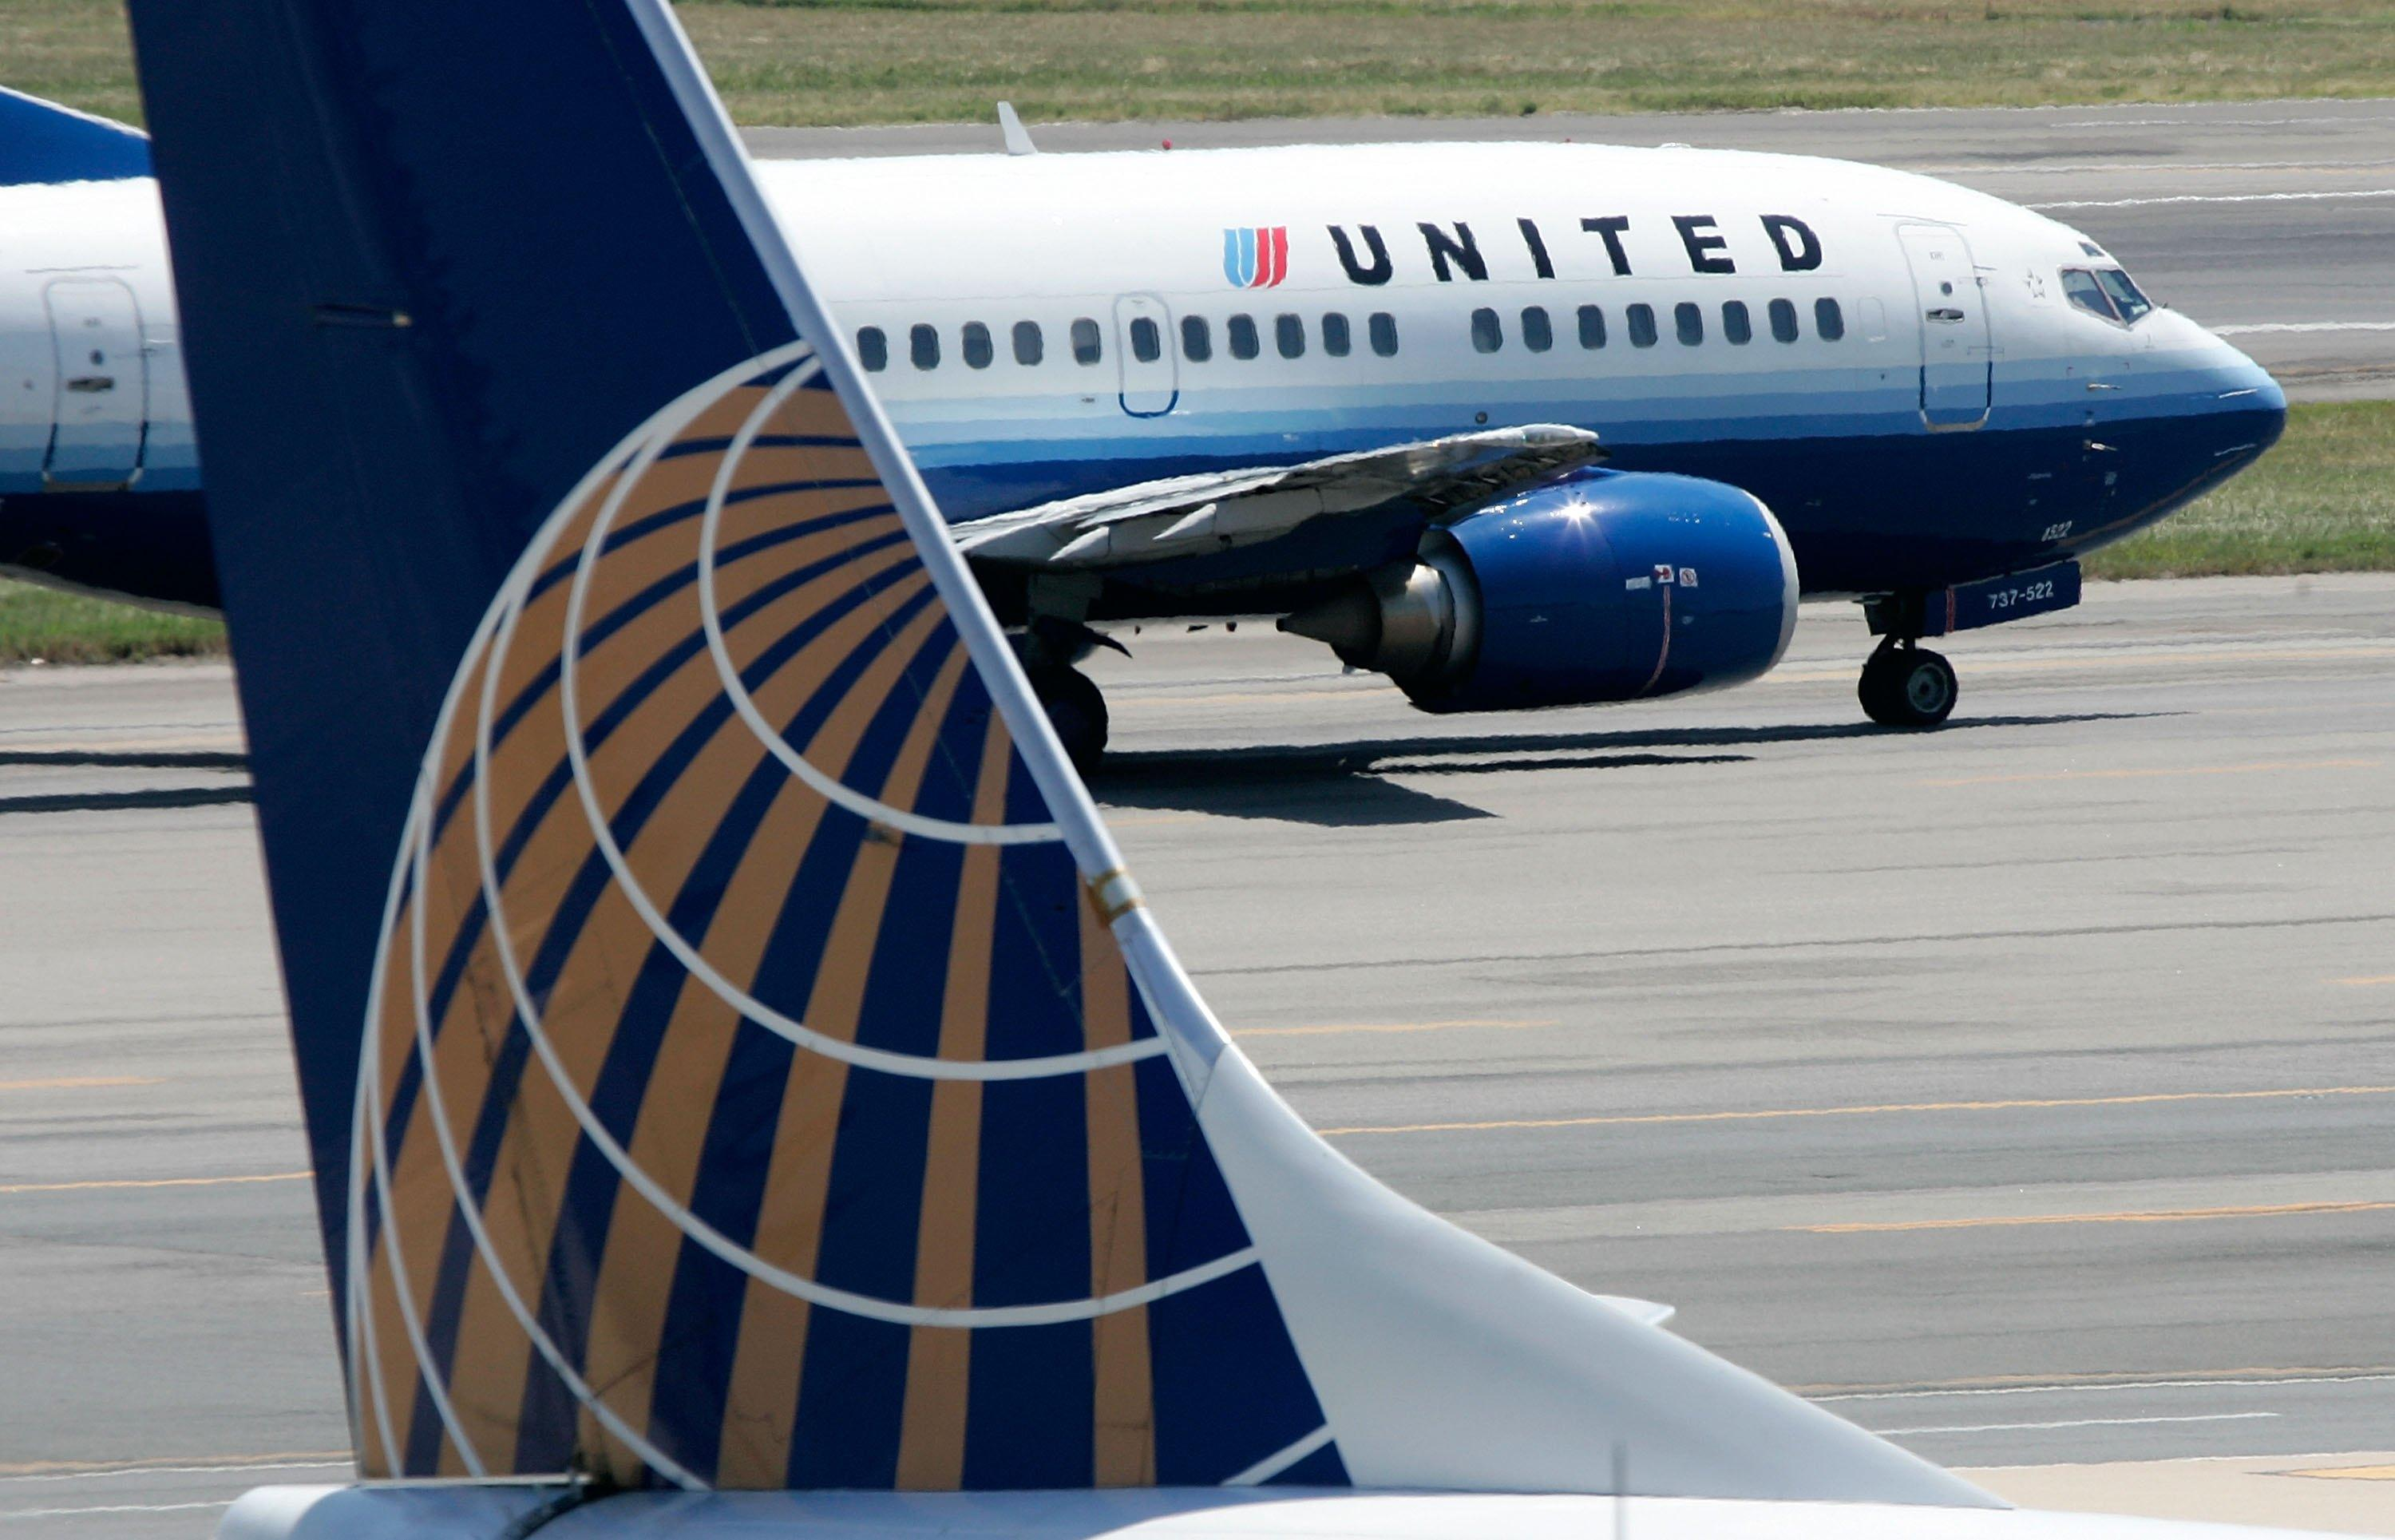 United compensates passengers after 'concerning incident' on flight to Williston